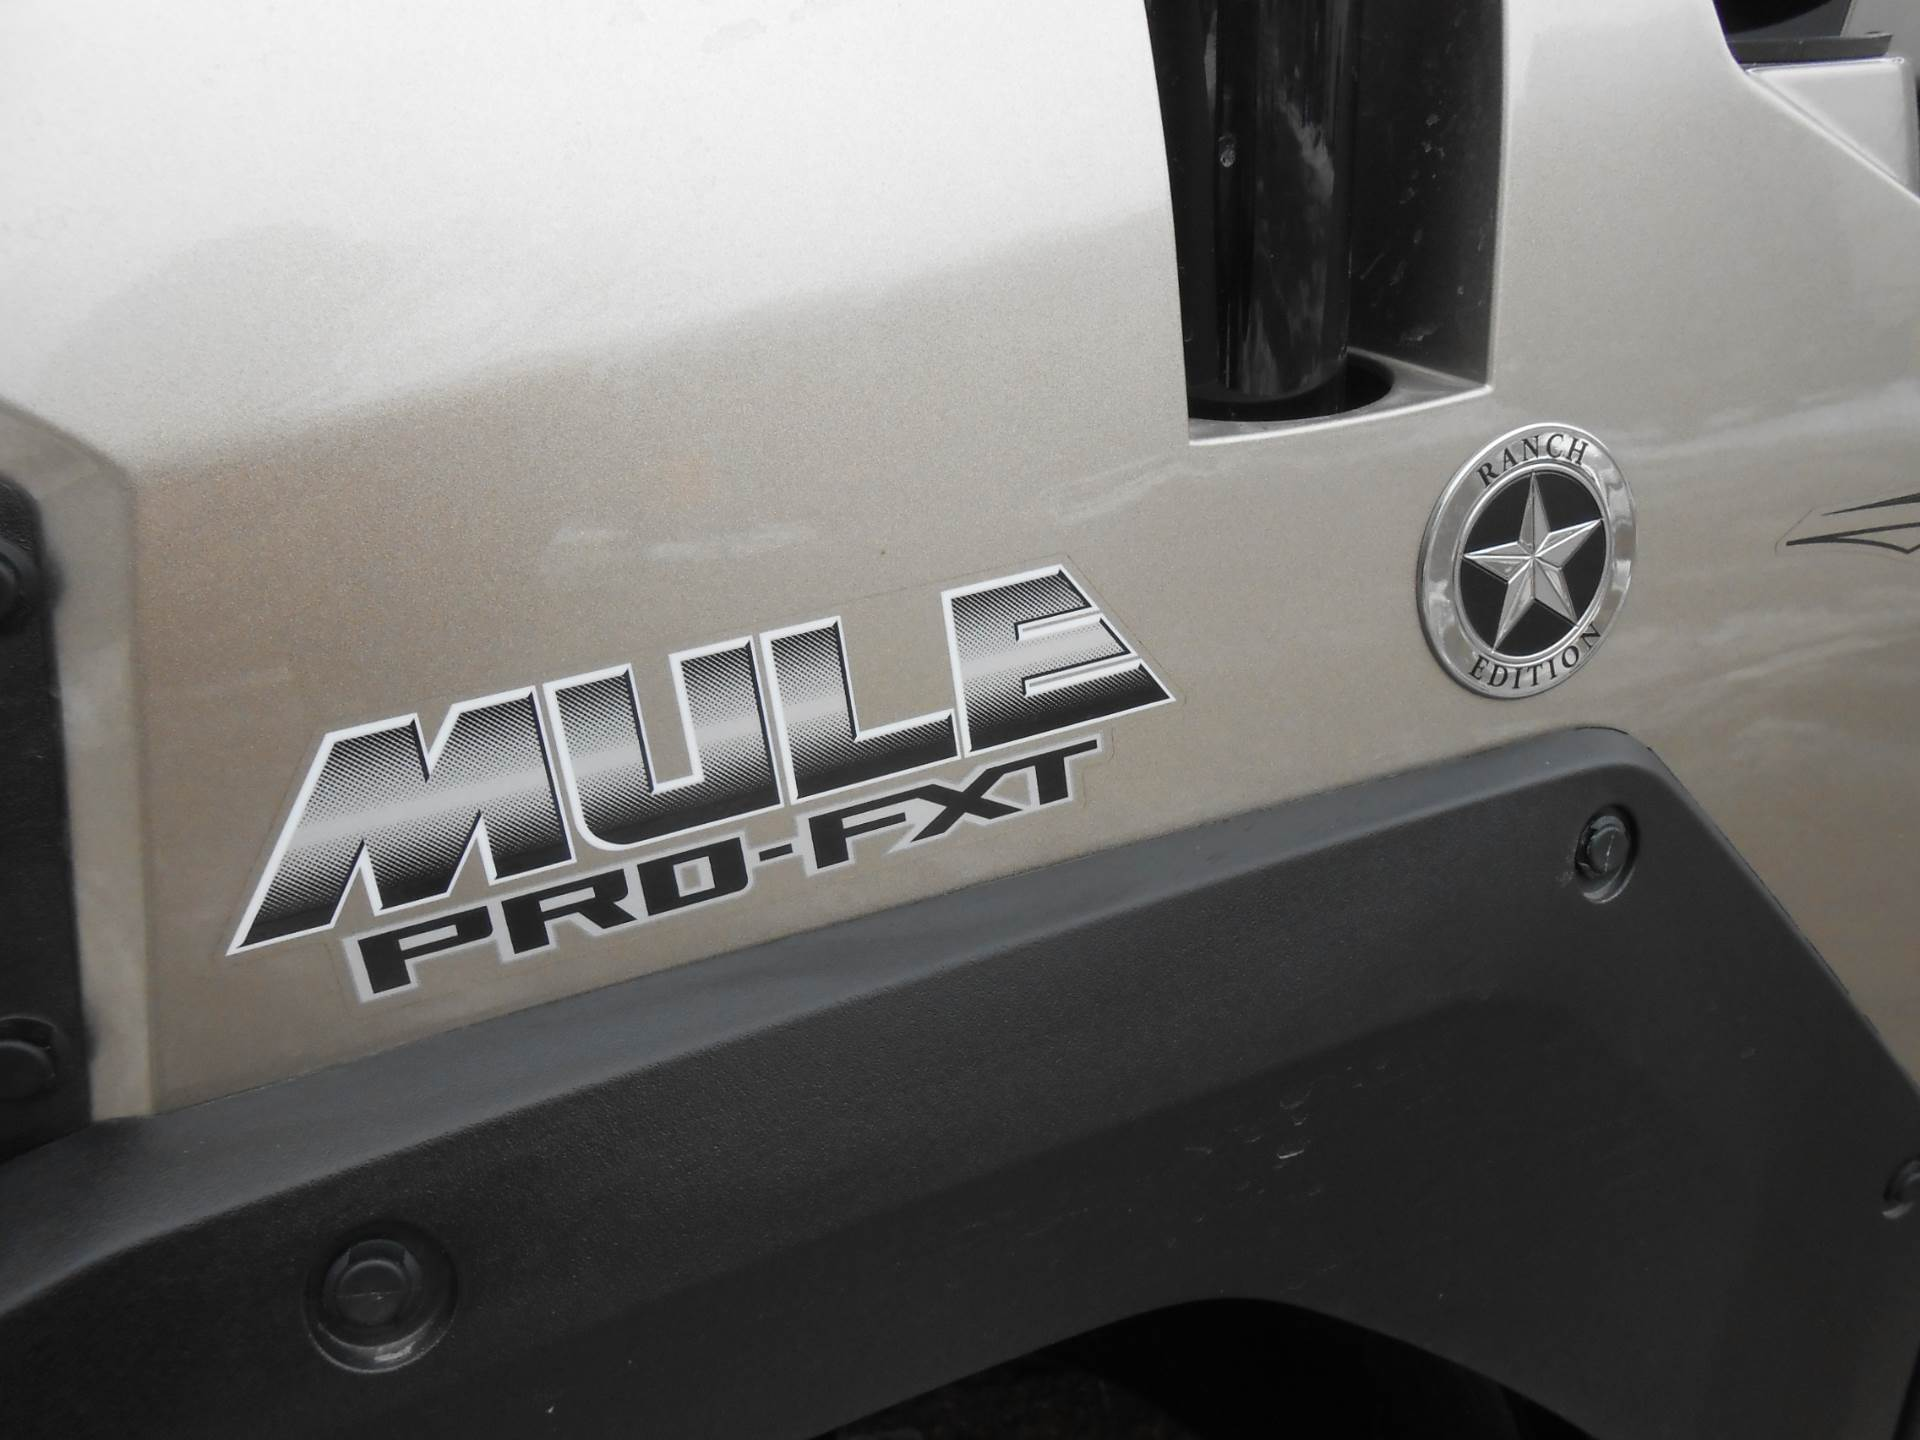 2018 Kawasaki Mule PRO-FXT RANCH EDITION 9